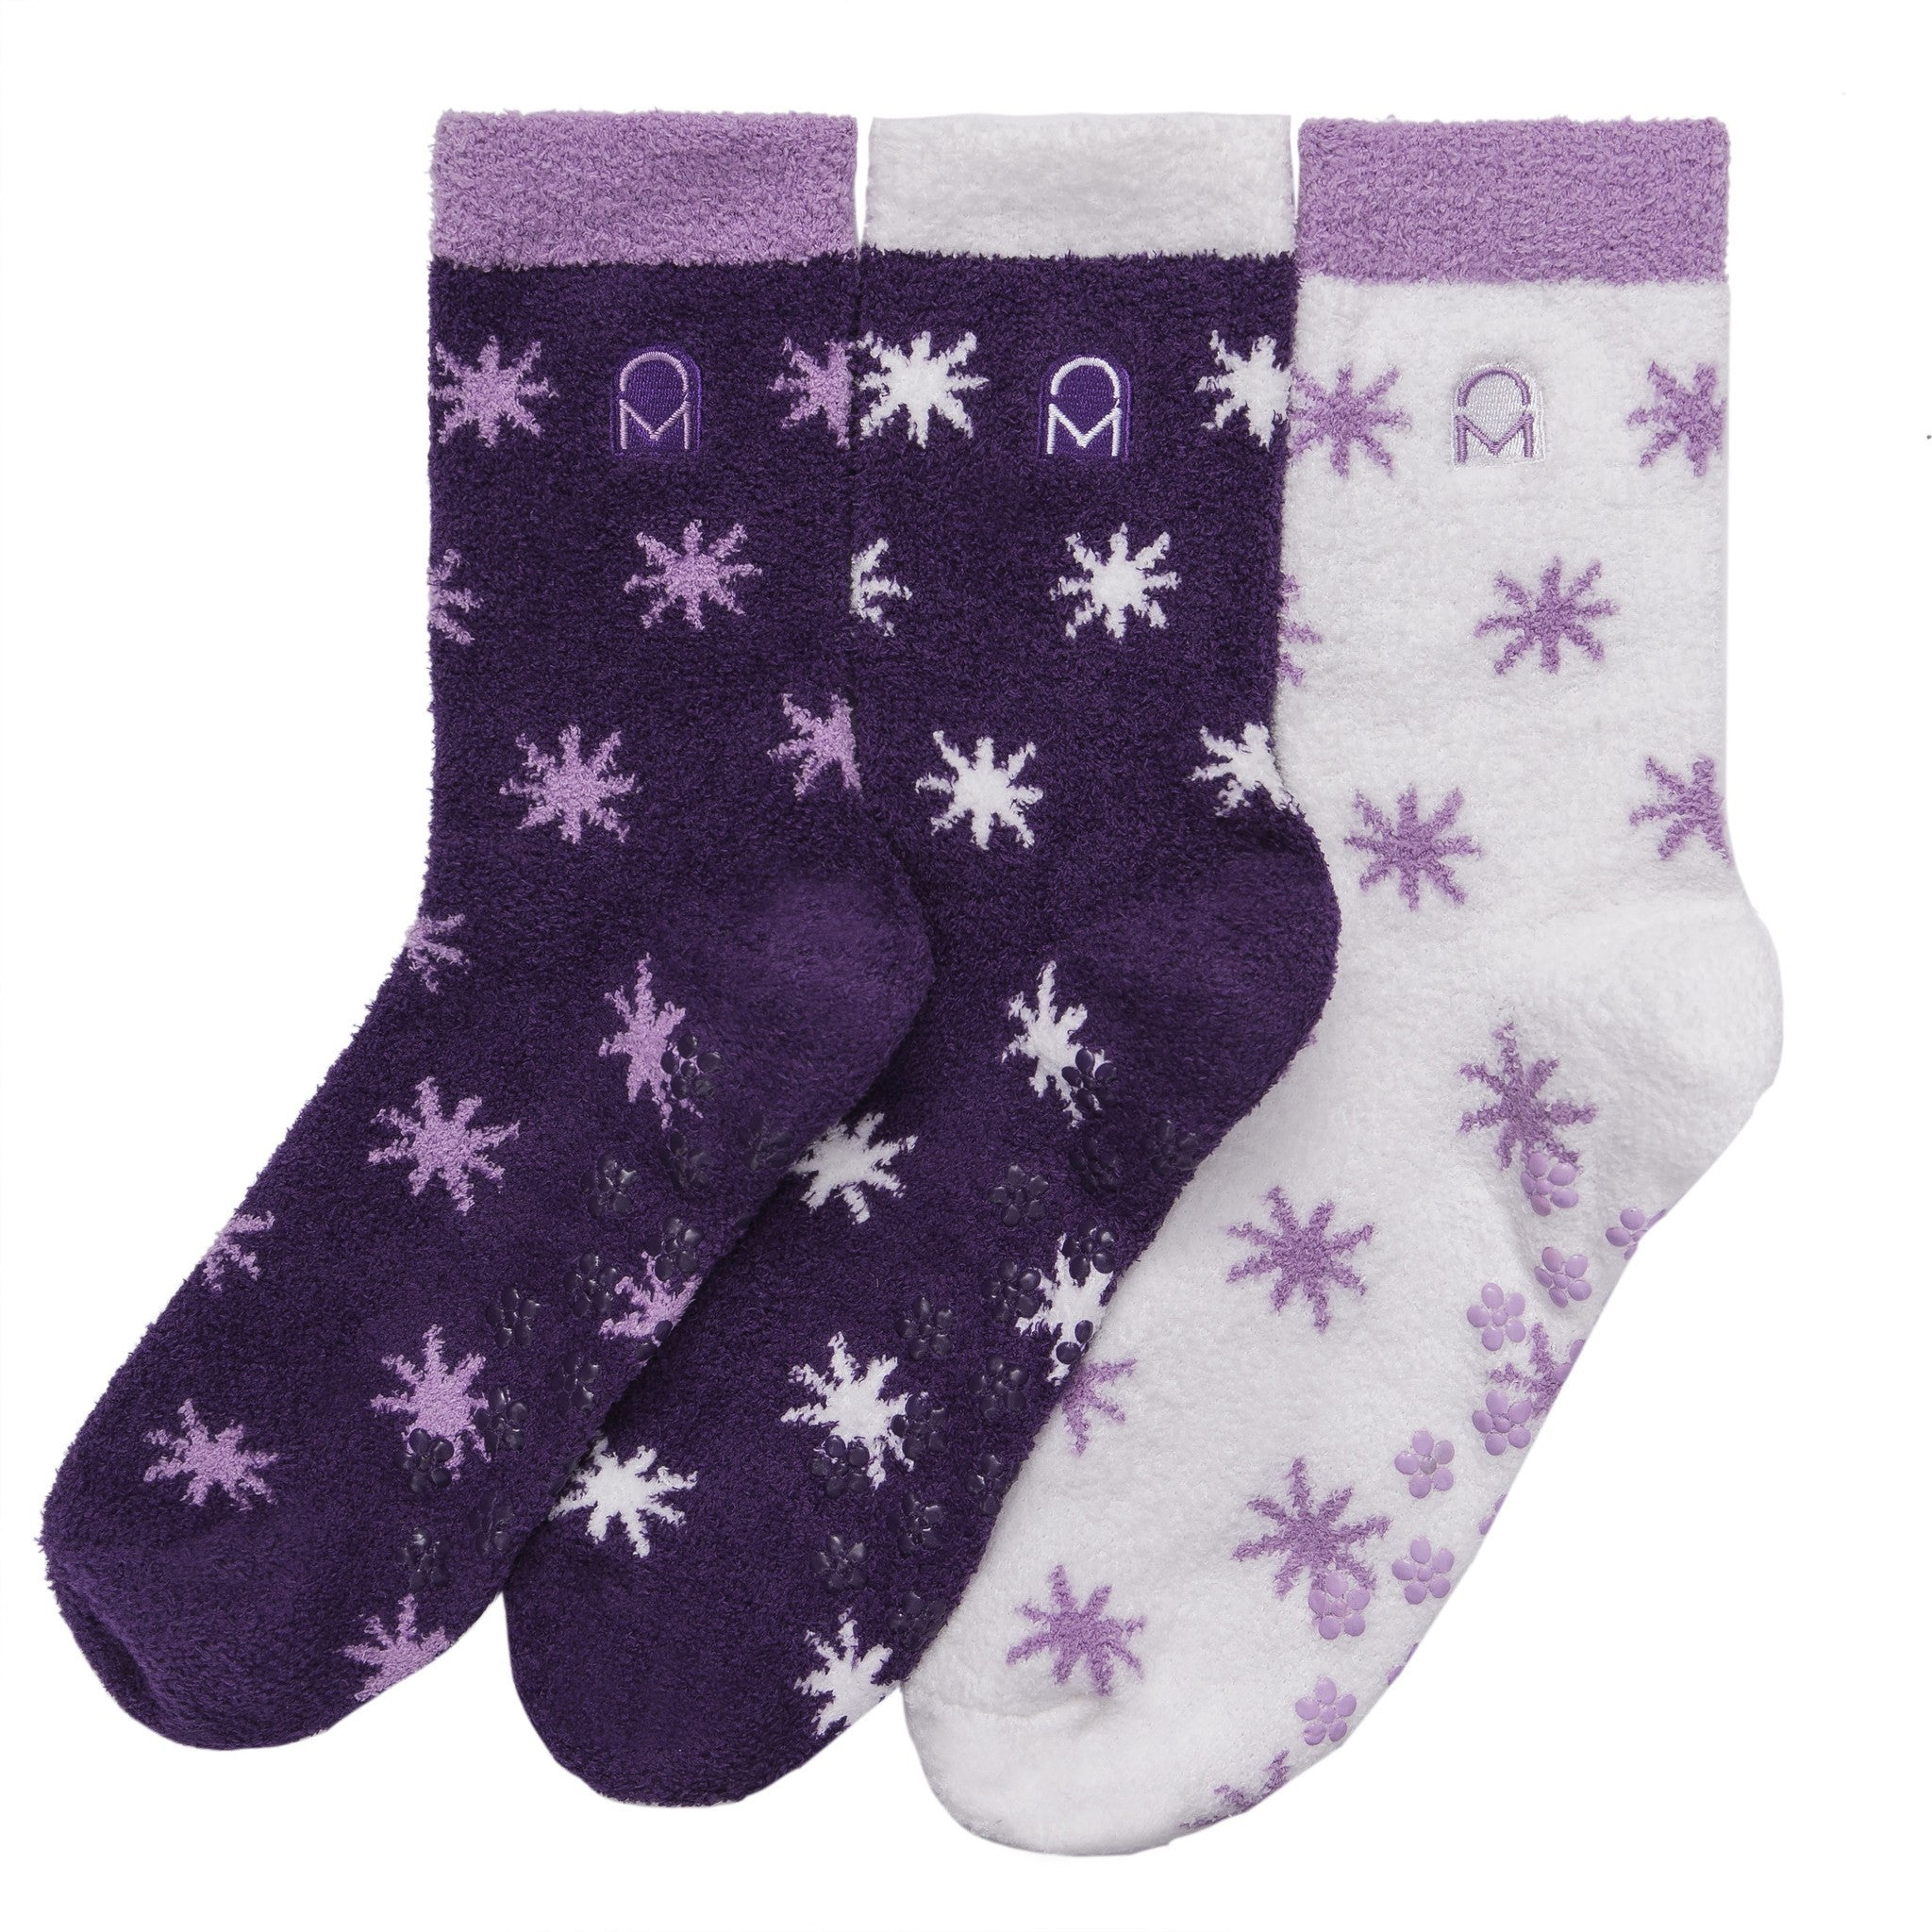 Women's Soft Anti-Skid Micro-Plush Winter Crew Socks